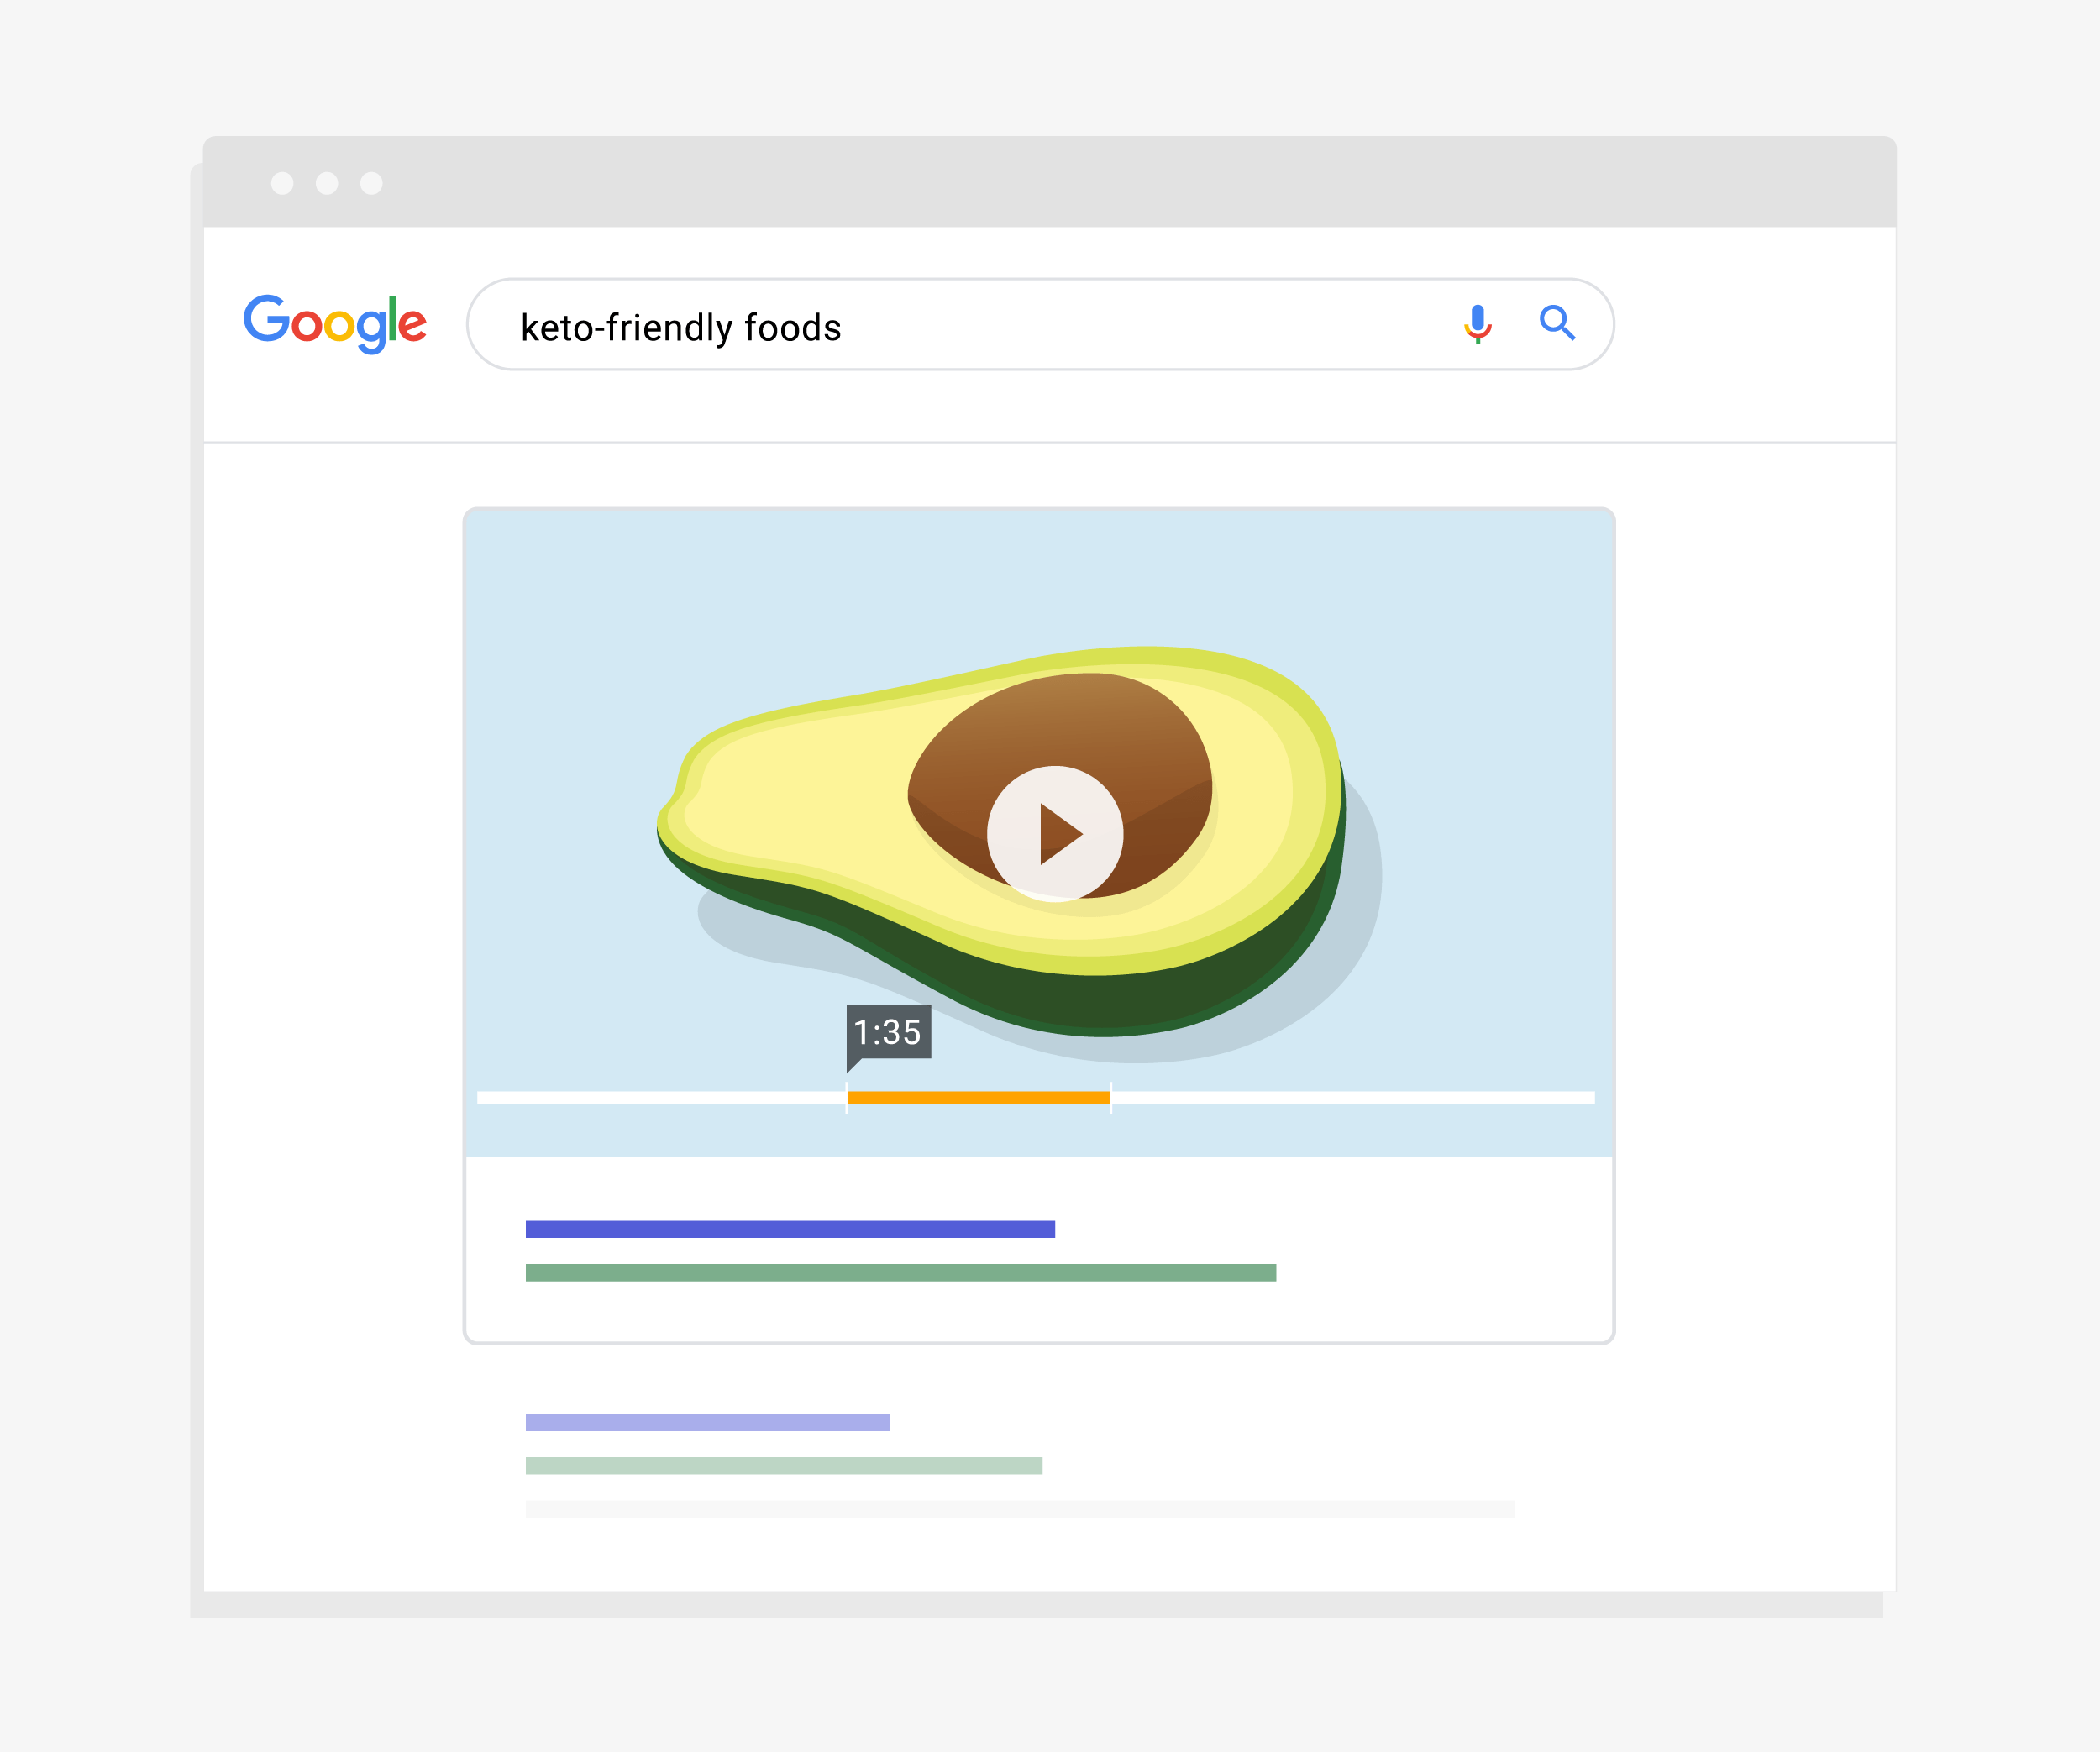 Google using video section as a snippet